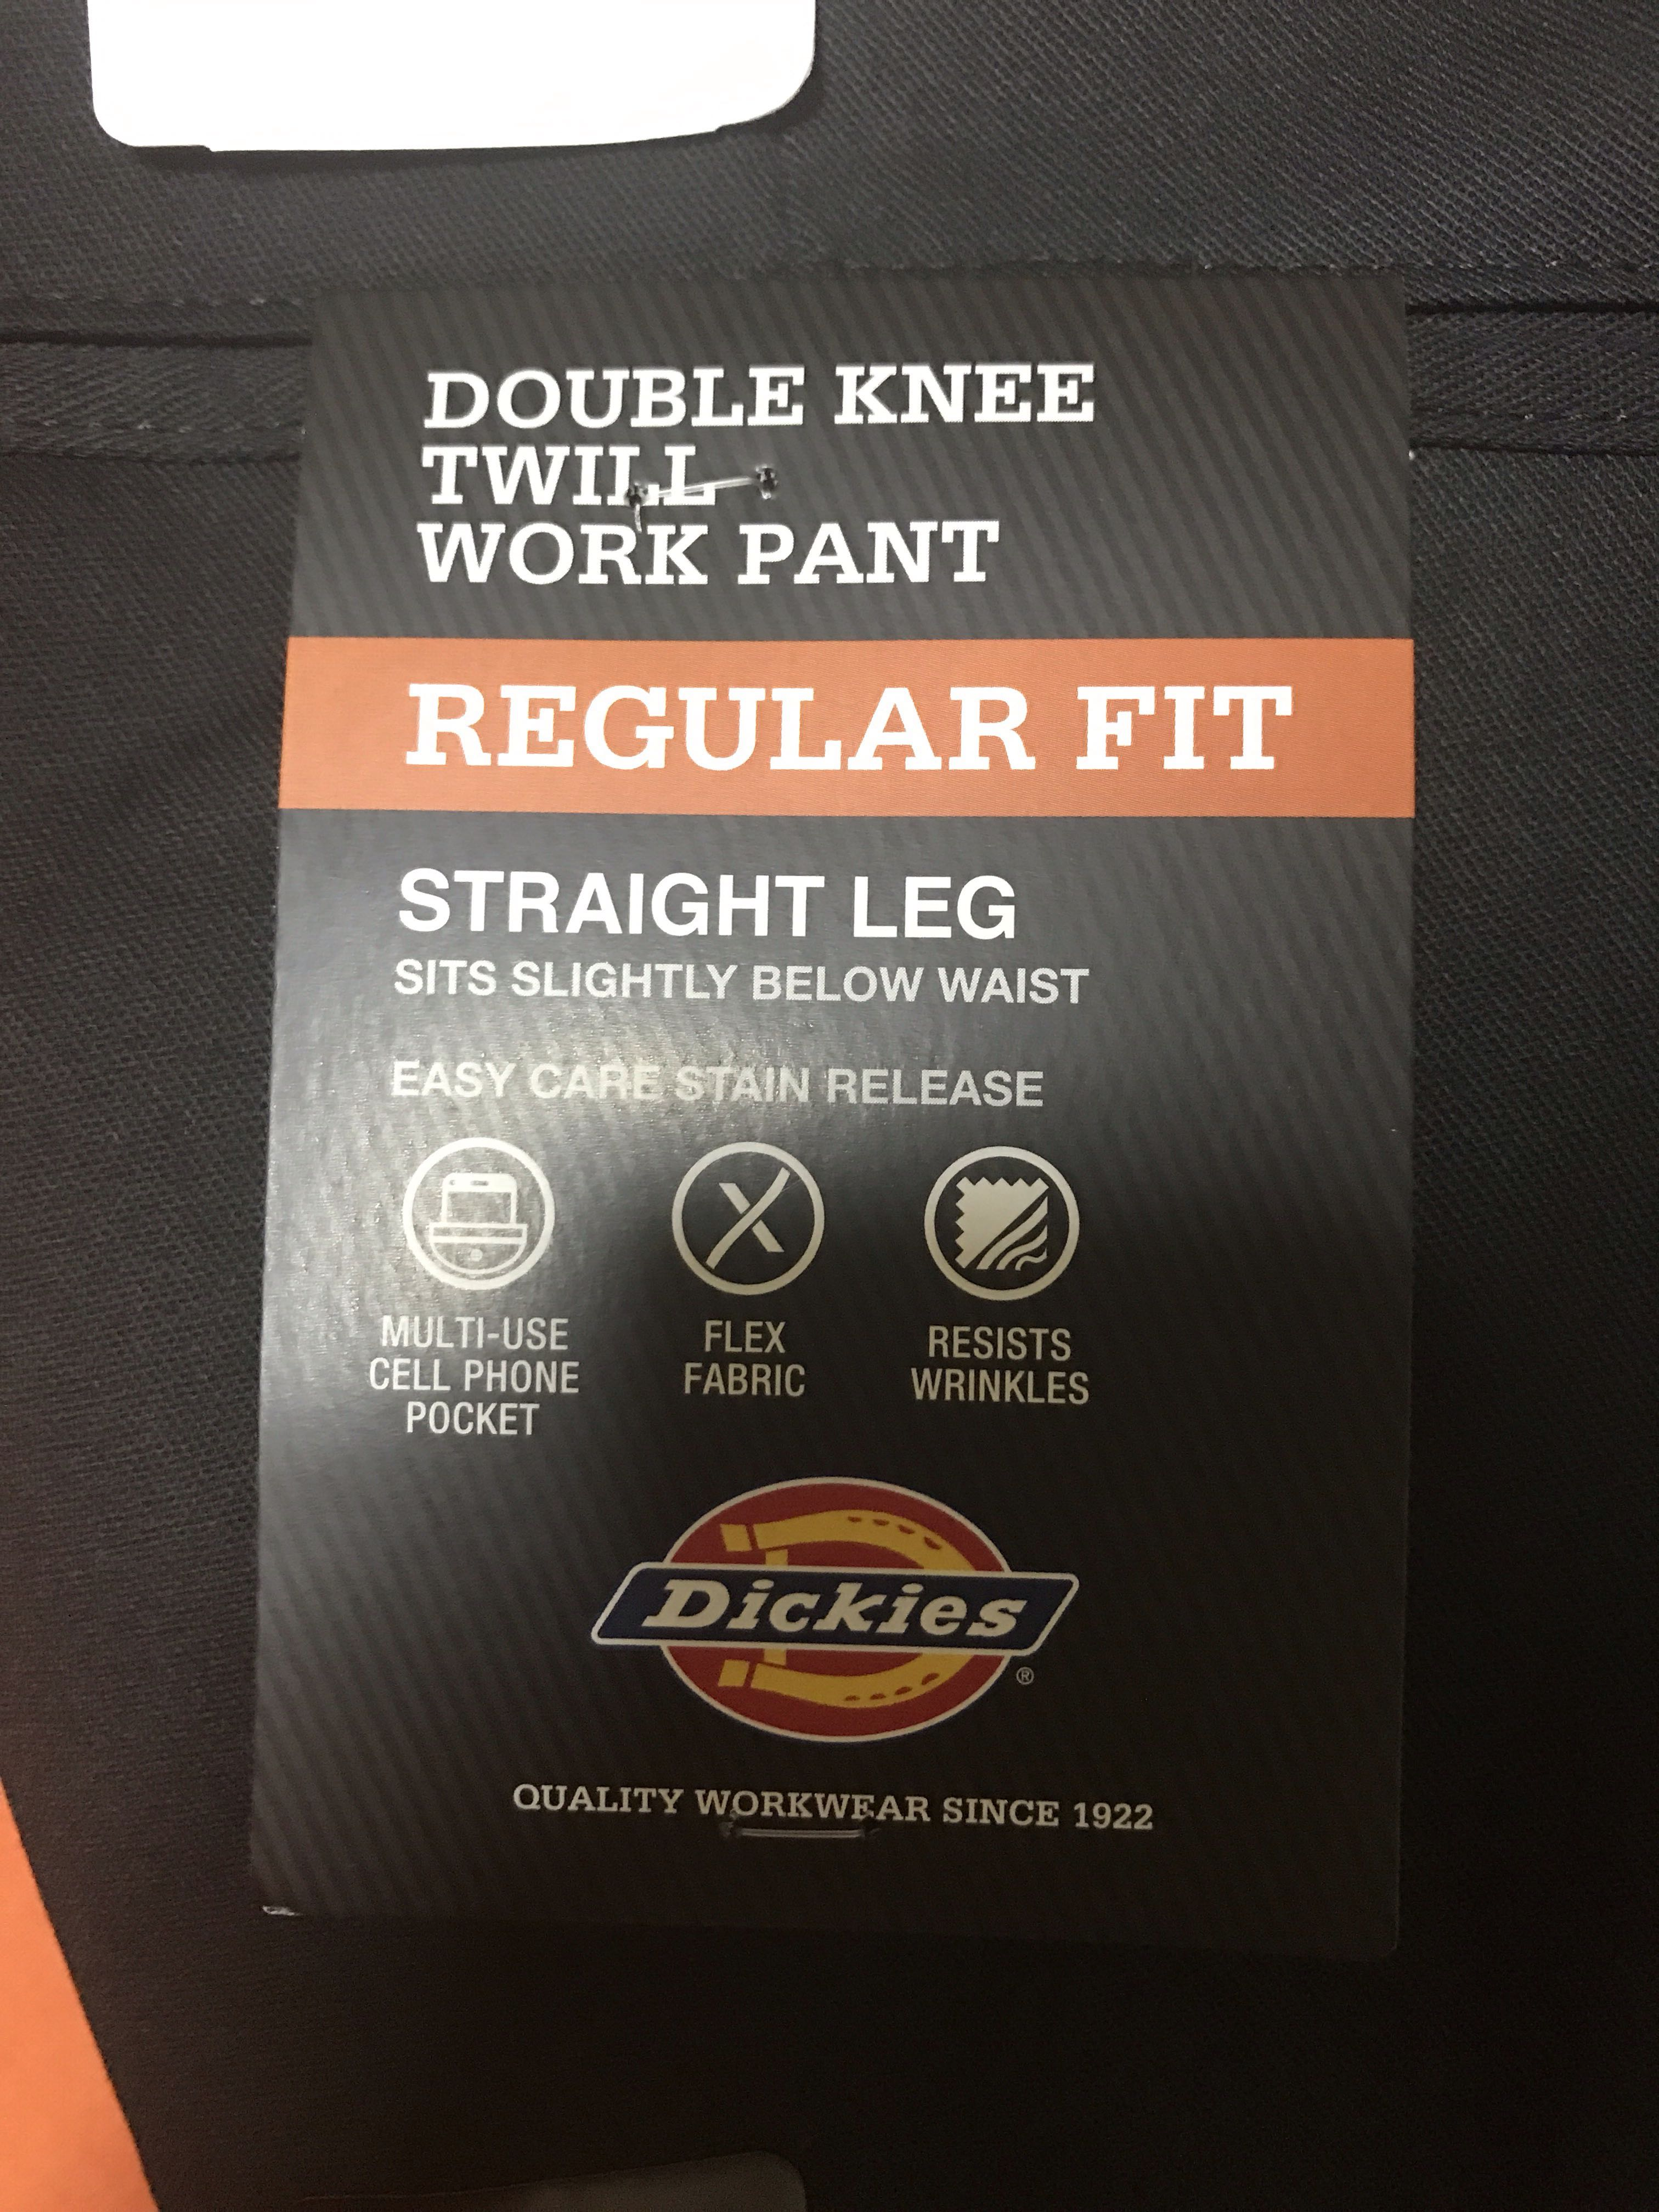 77e320ee Dickies Double Knee Regular Fit, Men's Fashion, Clothes, Bottoms on ...